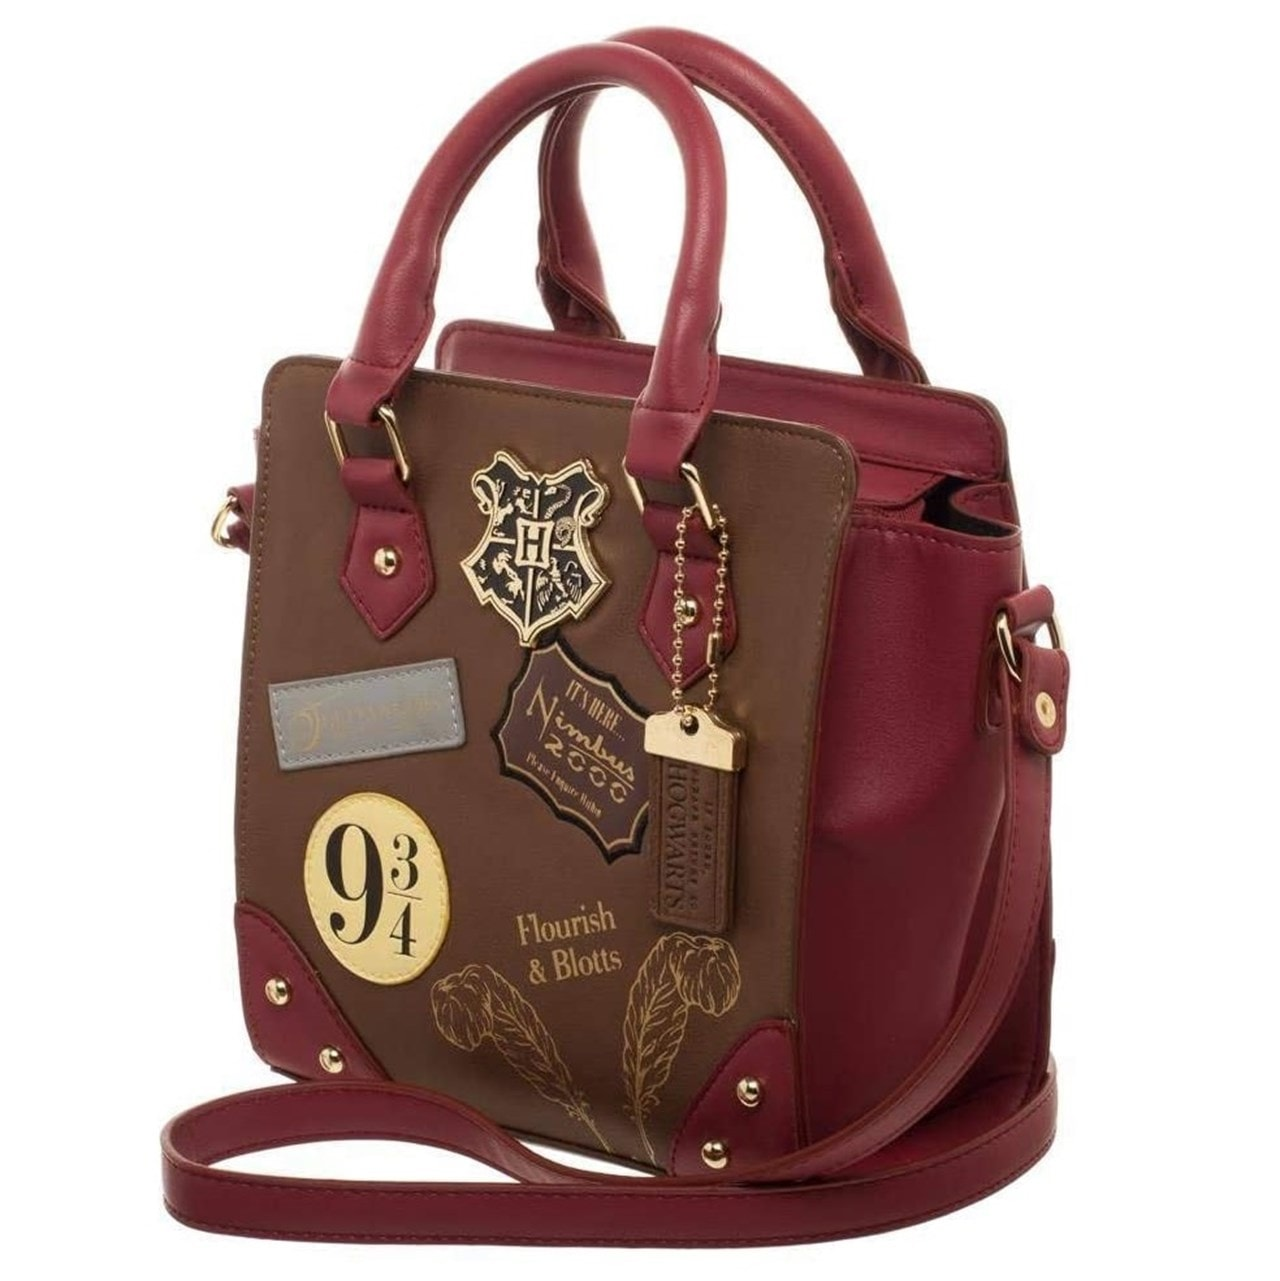 Harry Potter: Hogwarts Express 9 3/4 Handbag - 2